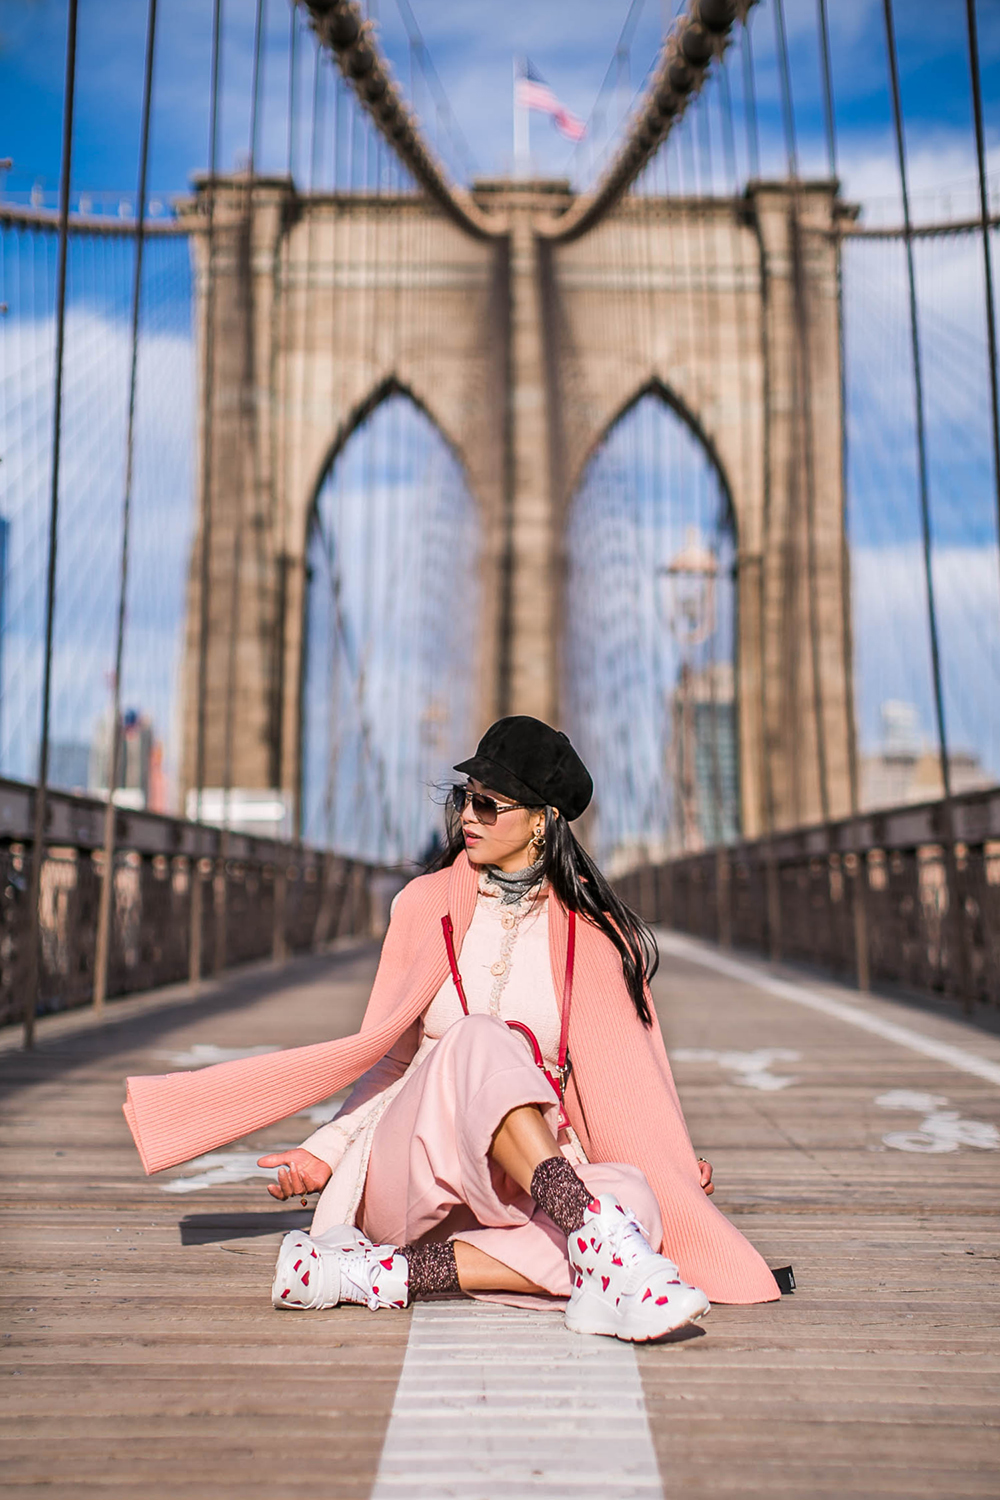 Buberry-heart-sneakers-all-pink-MF-3.jpg